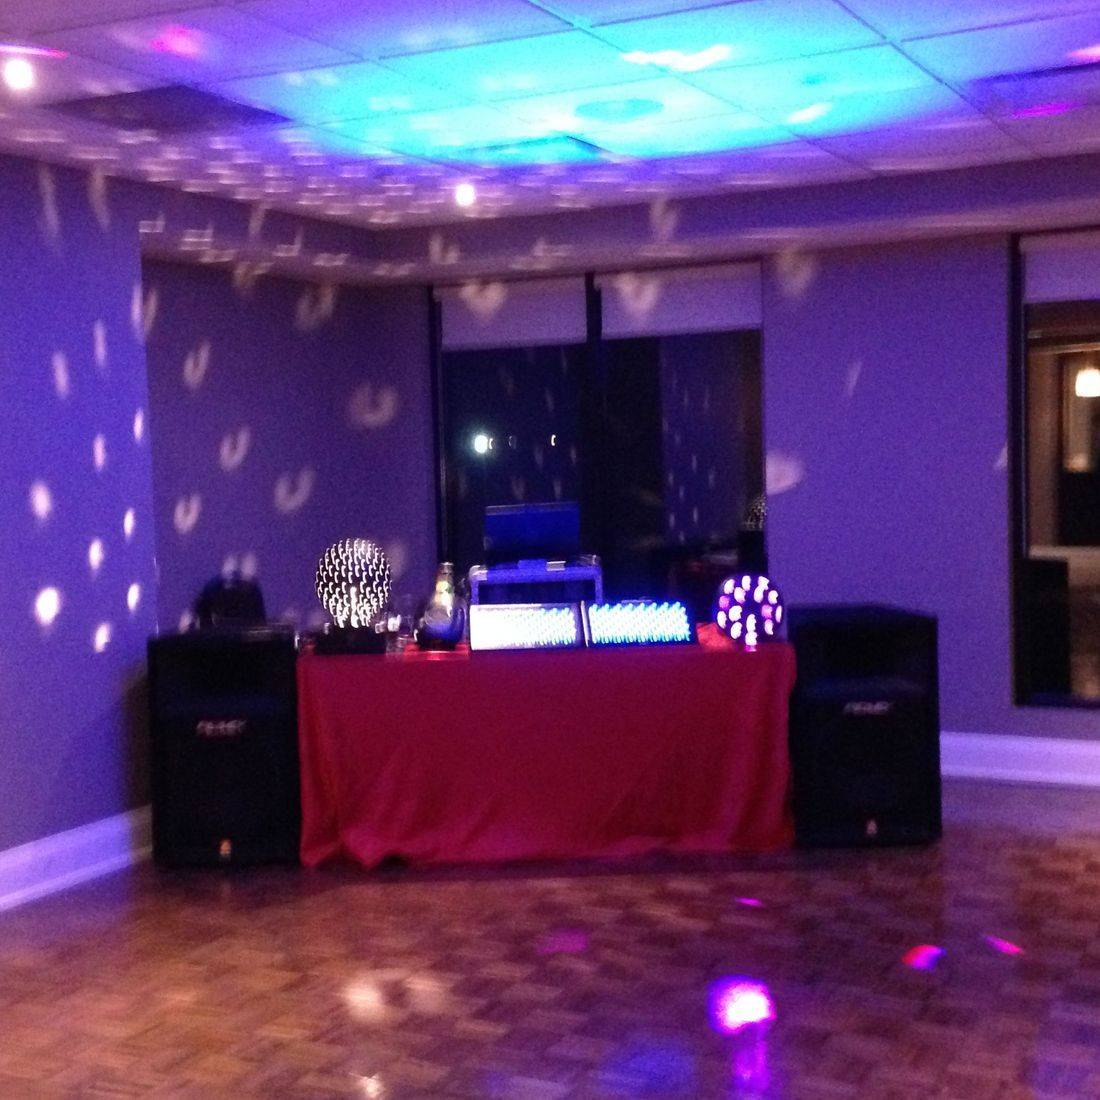 Mr. Productions DJ Service deejaying at a Christmas Party at the Dundas Valley Golf and Curling Club.